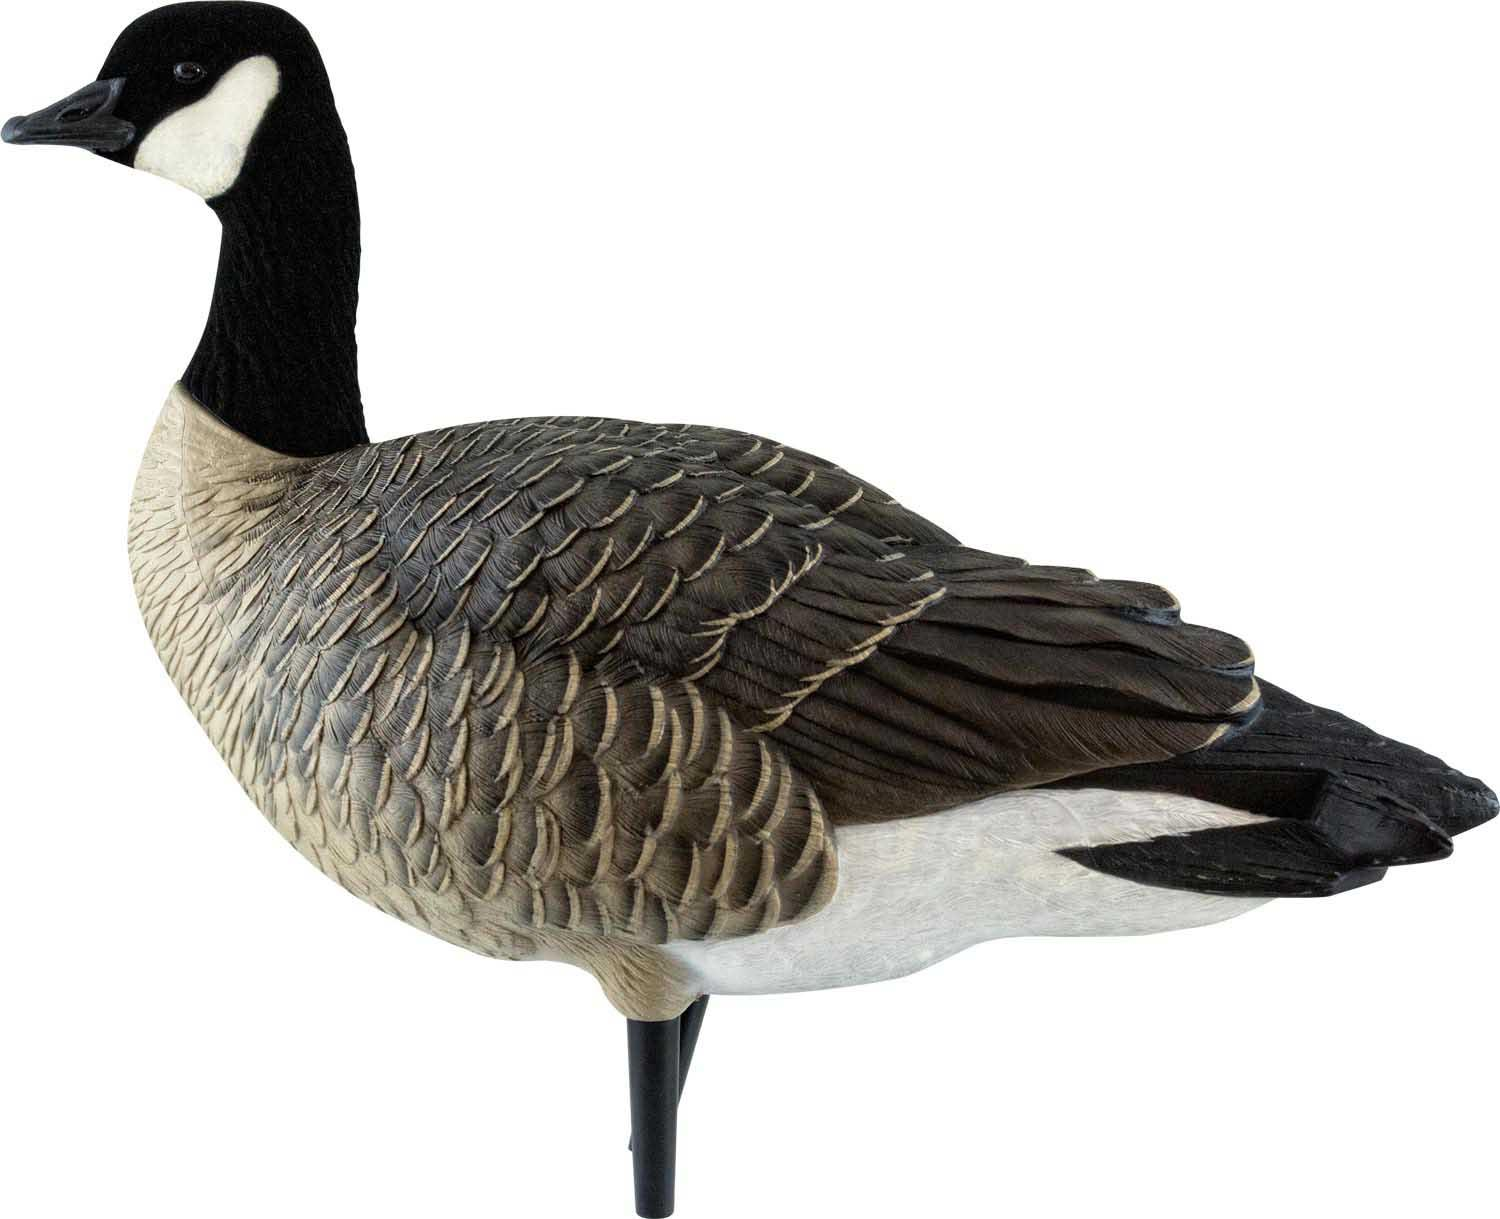 Avian-X AXF Outfitter Lesser Pack Fully Flocked Decoys, 12 Pack with Slotted Decoy Bag_3.jpg